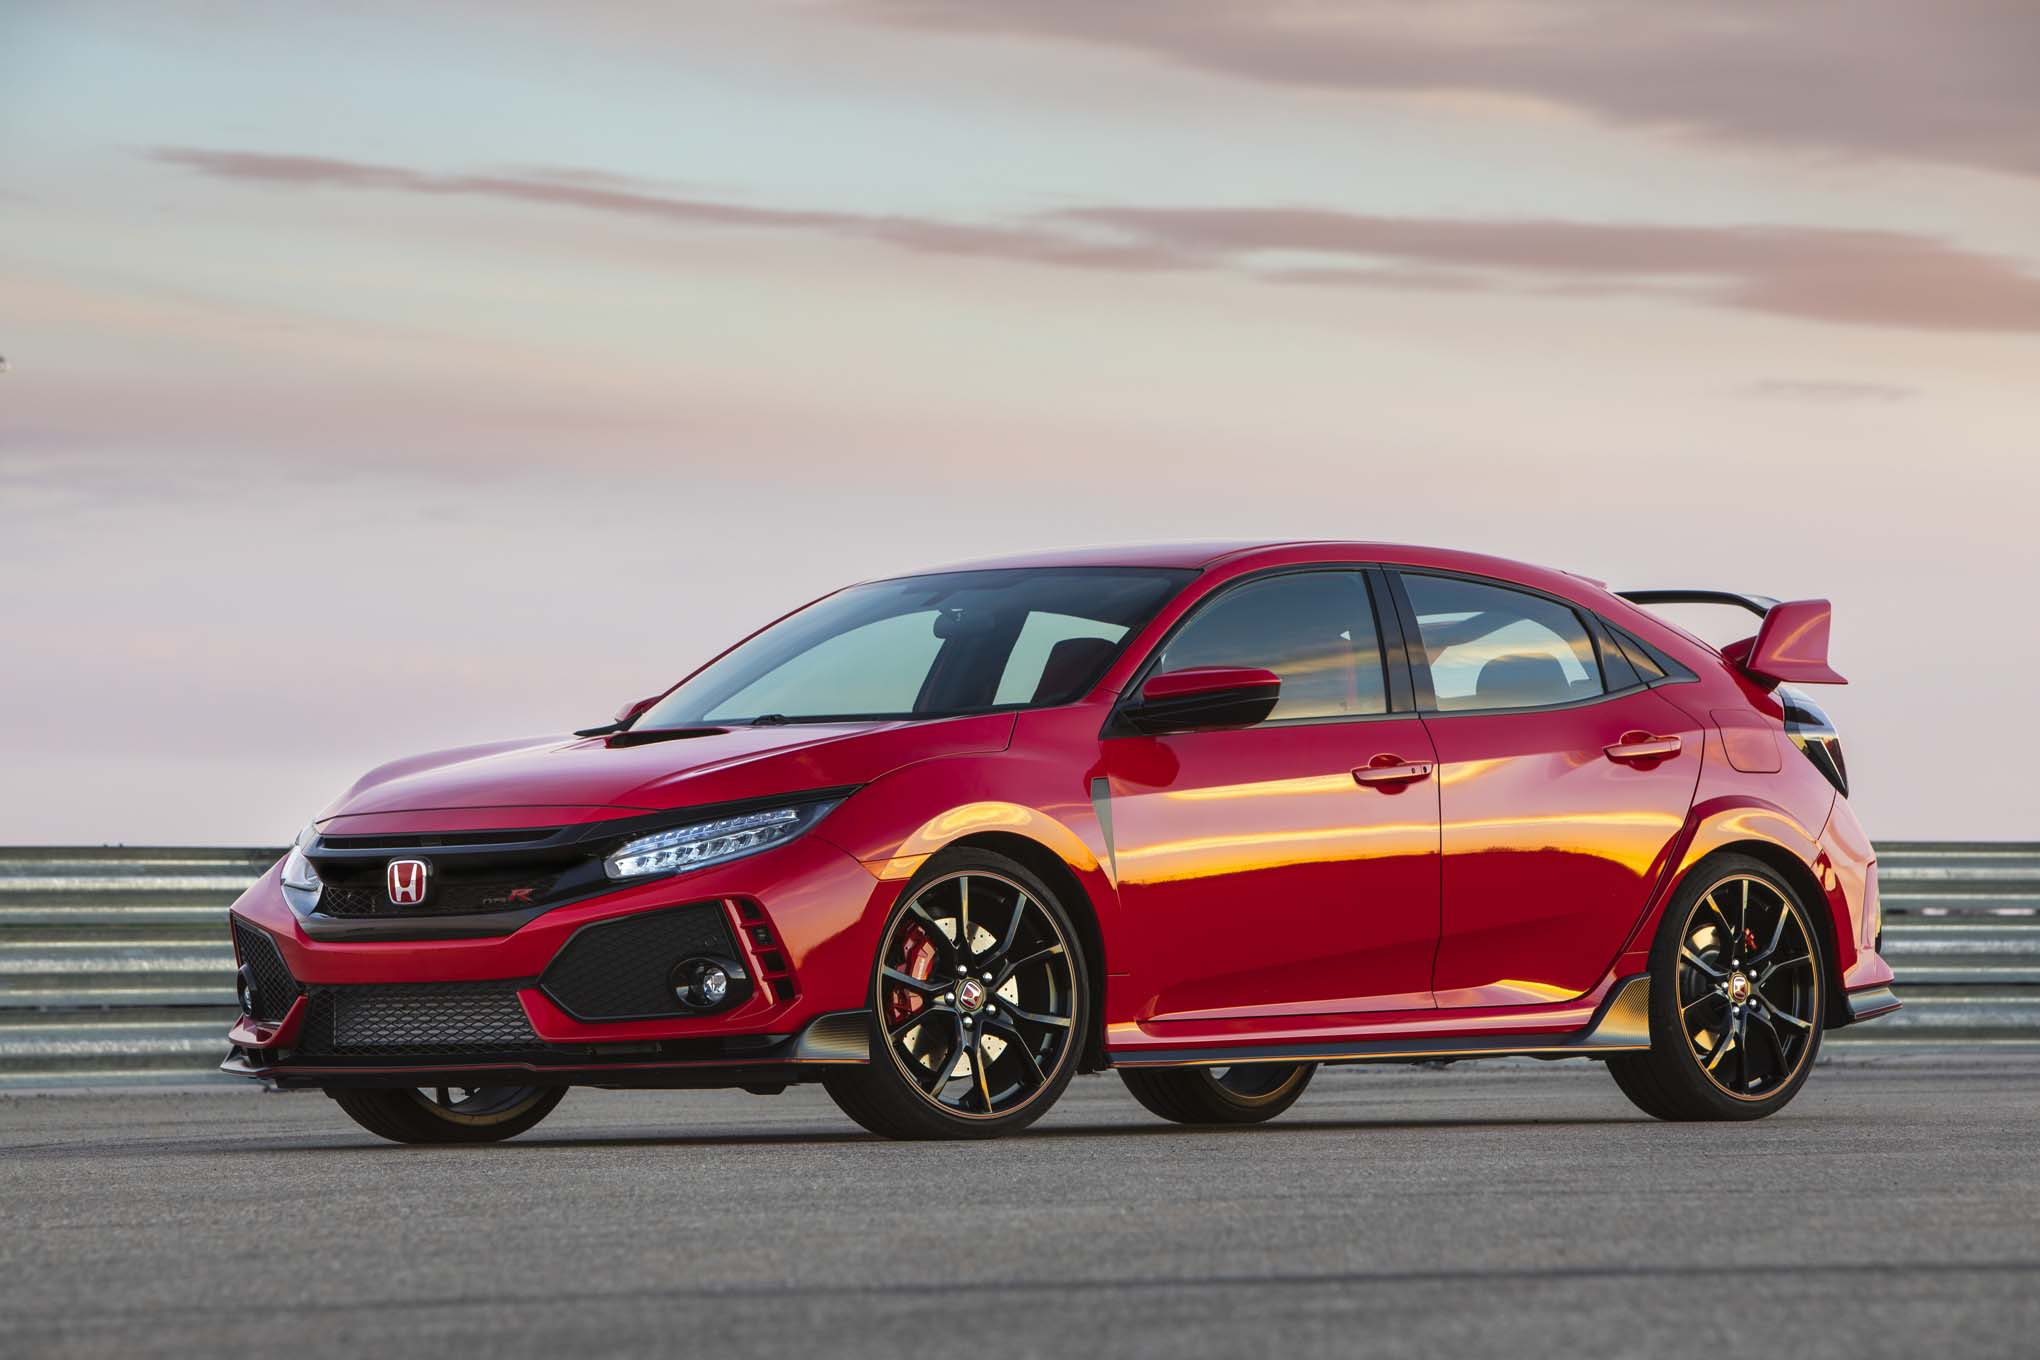 Honda Civic Type R 2017, disponible desde $34,775 dólares ...